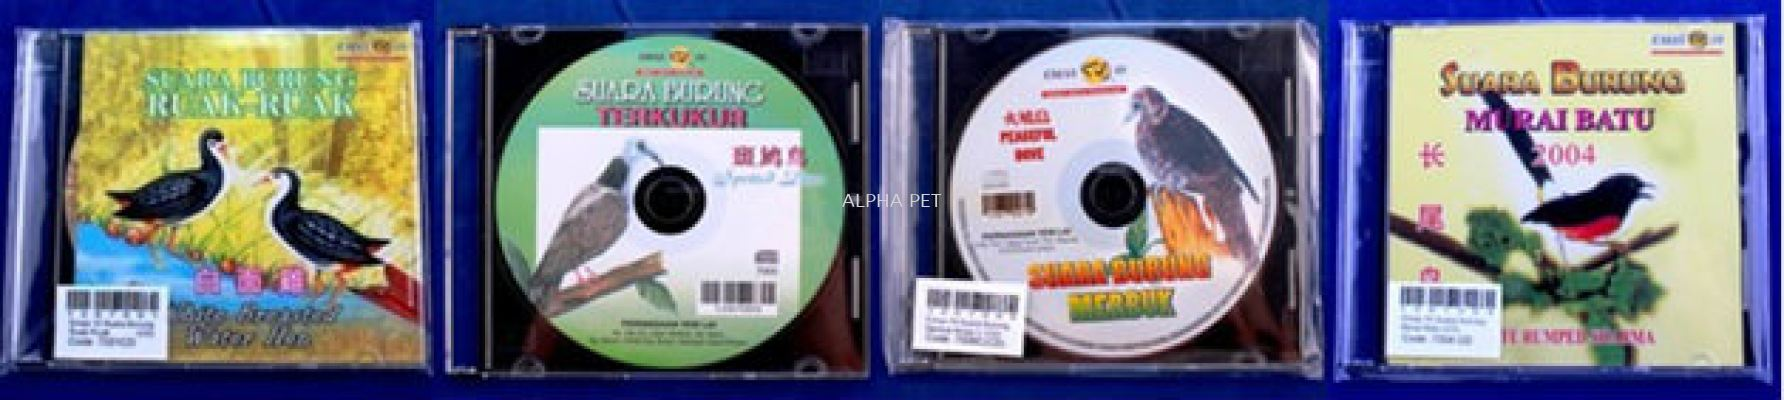 EMAS 10 BIRD SOUND CD